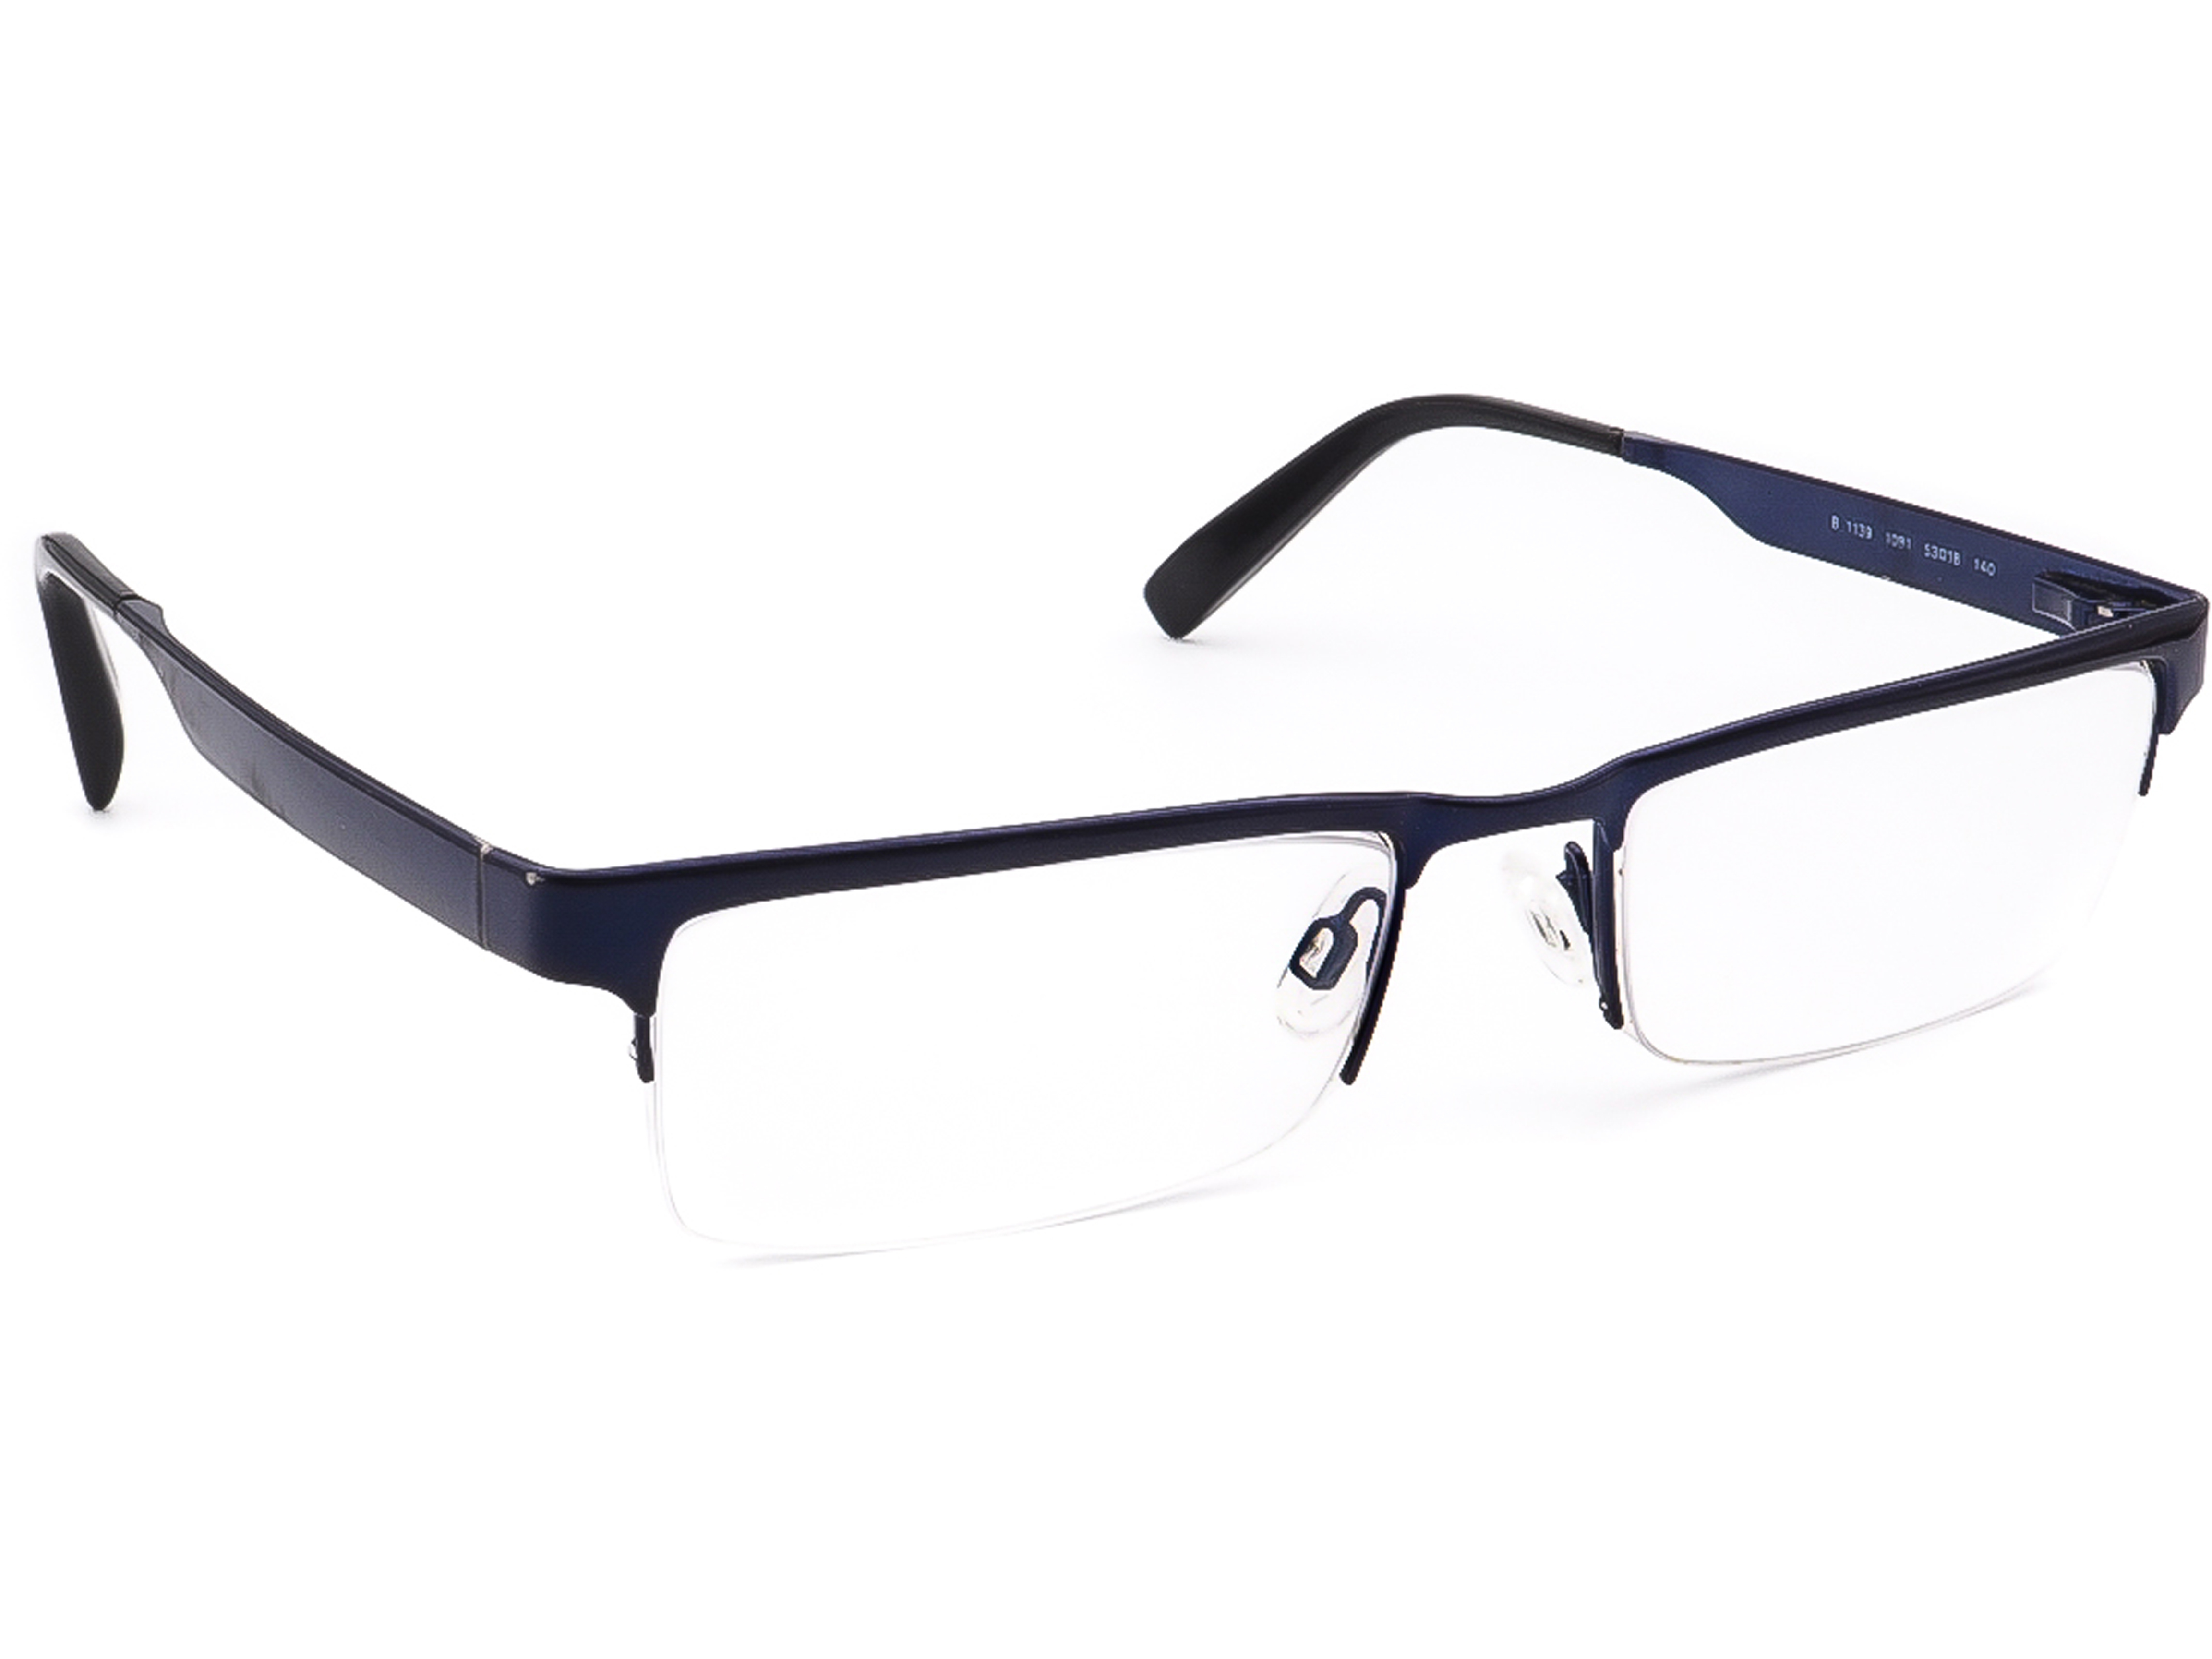 Burberry B 1139 1081 Eyeglasses